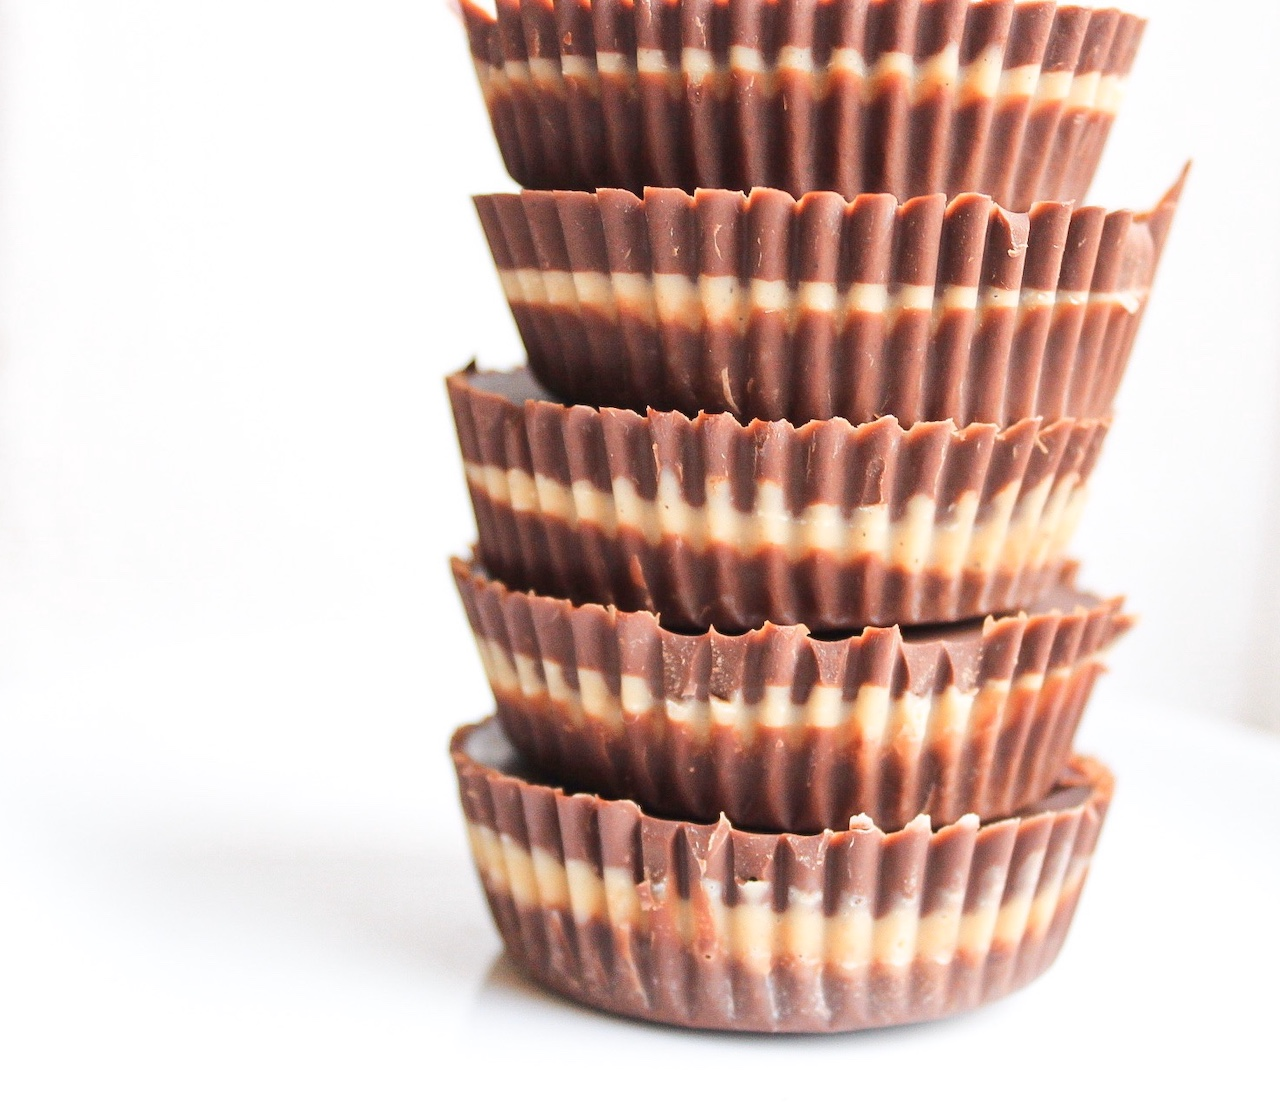 Homemade Almond Butter Cups